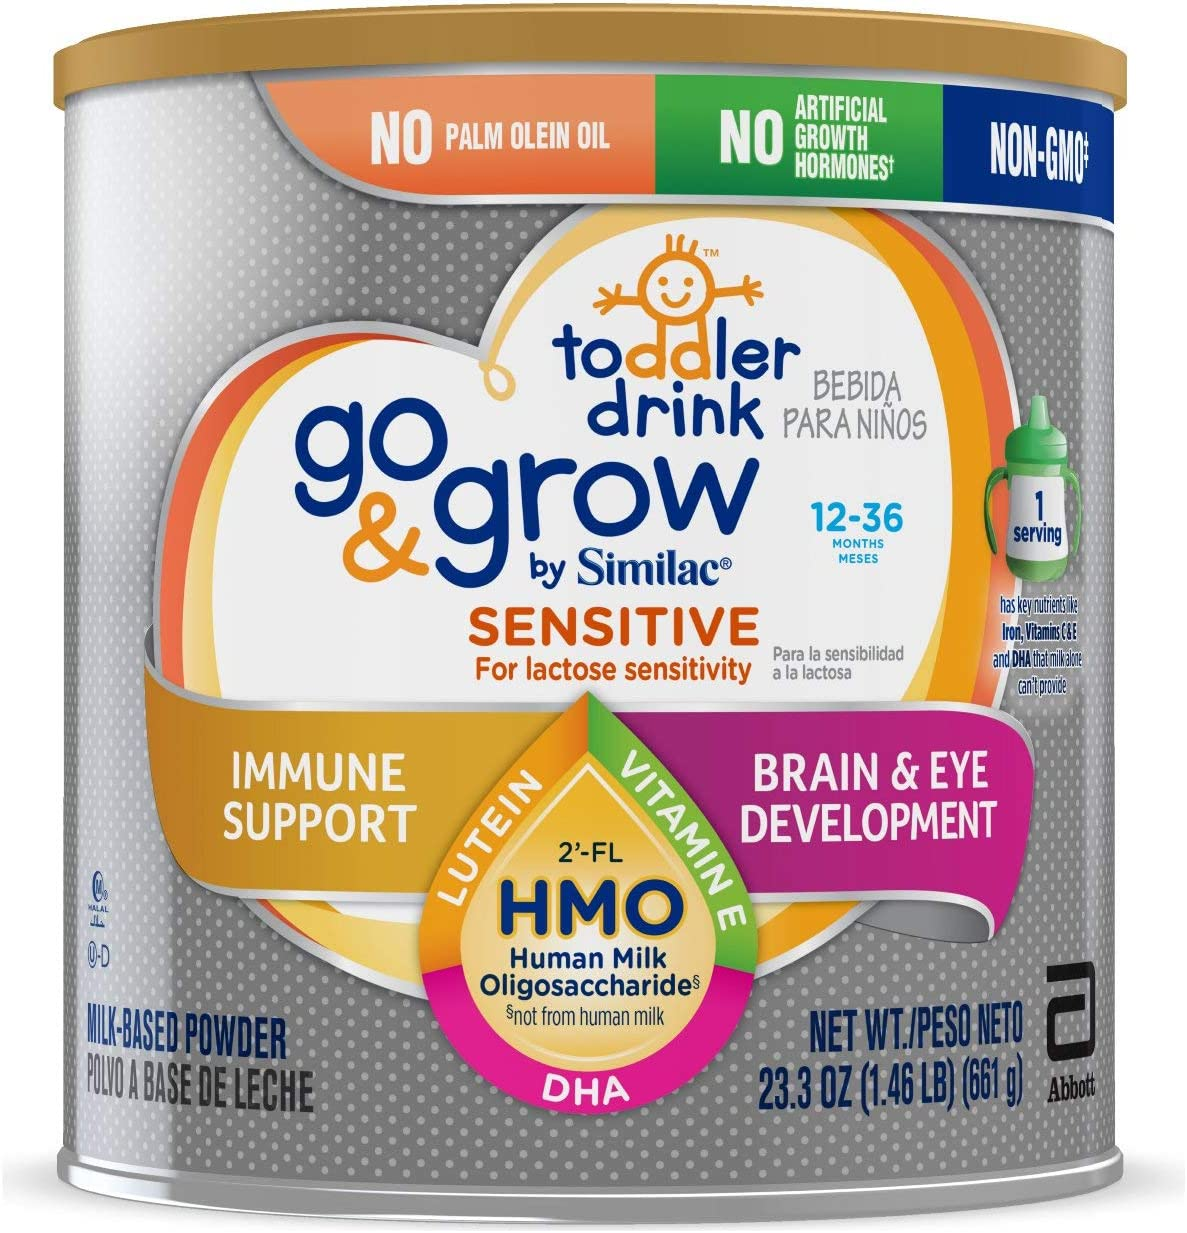 Mail order Similac Go Grow by Popular standard Sensitive Non-G